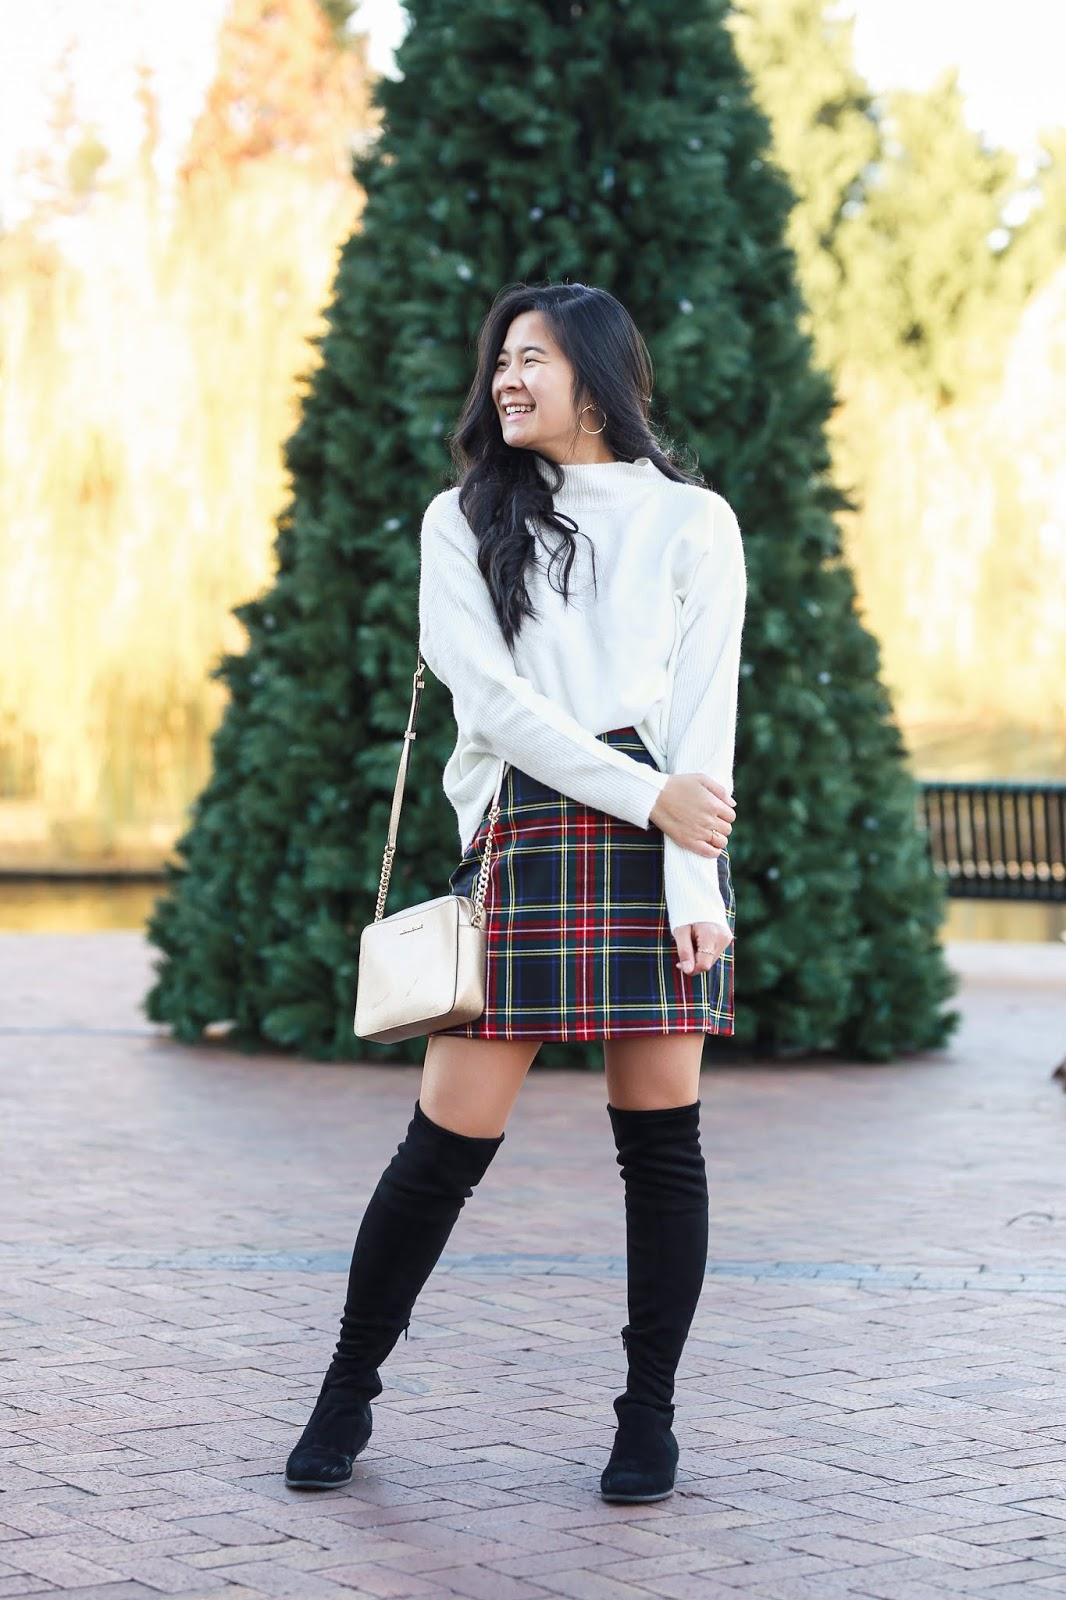 Holiday Plaid outfit idea